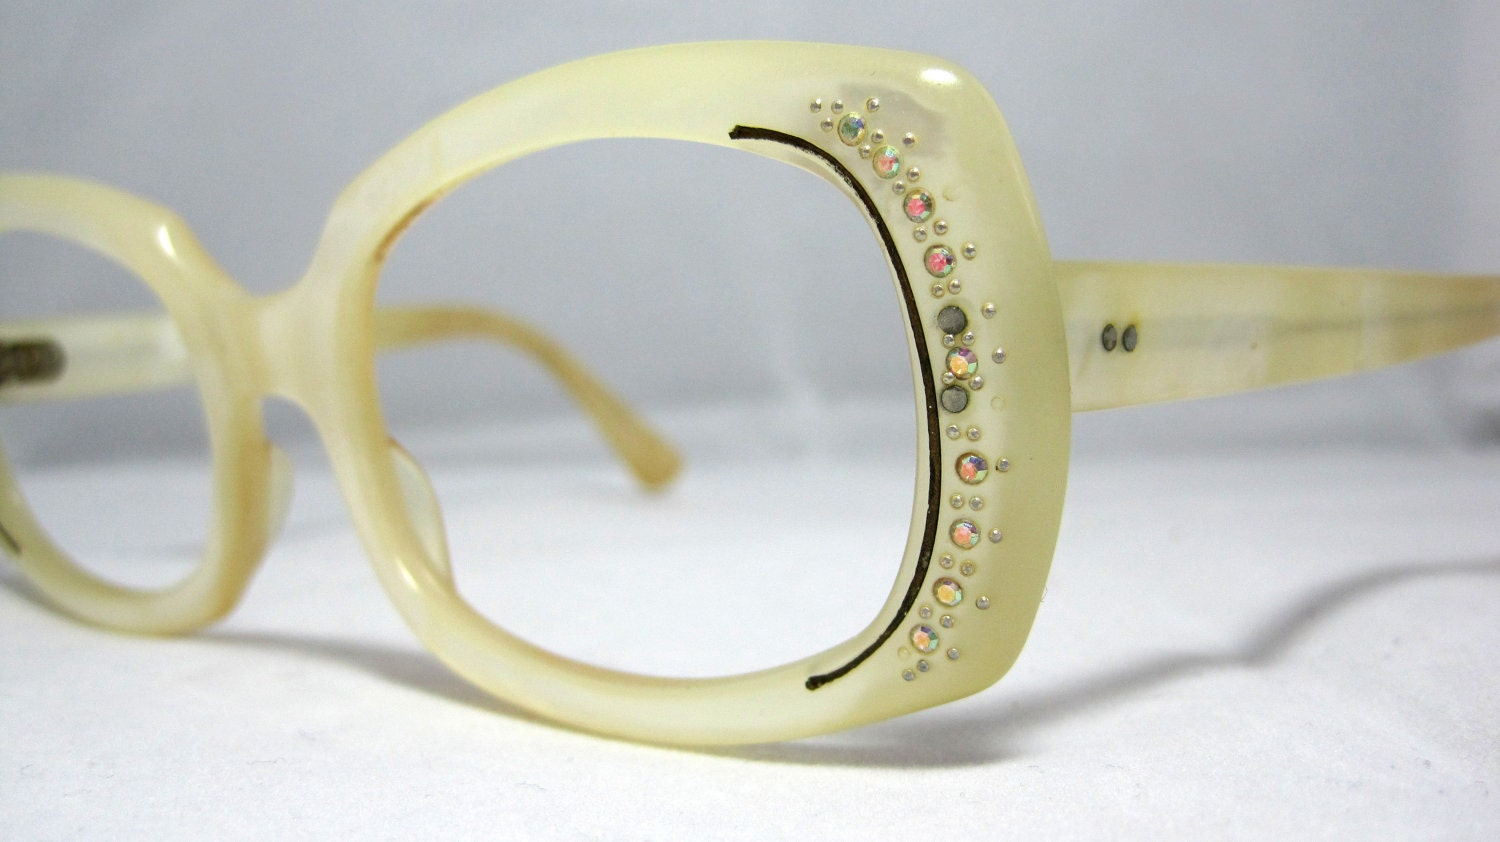 Vintage Eyeglasses Sunglasses. Ivory and Gold color with